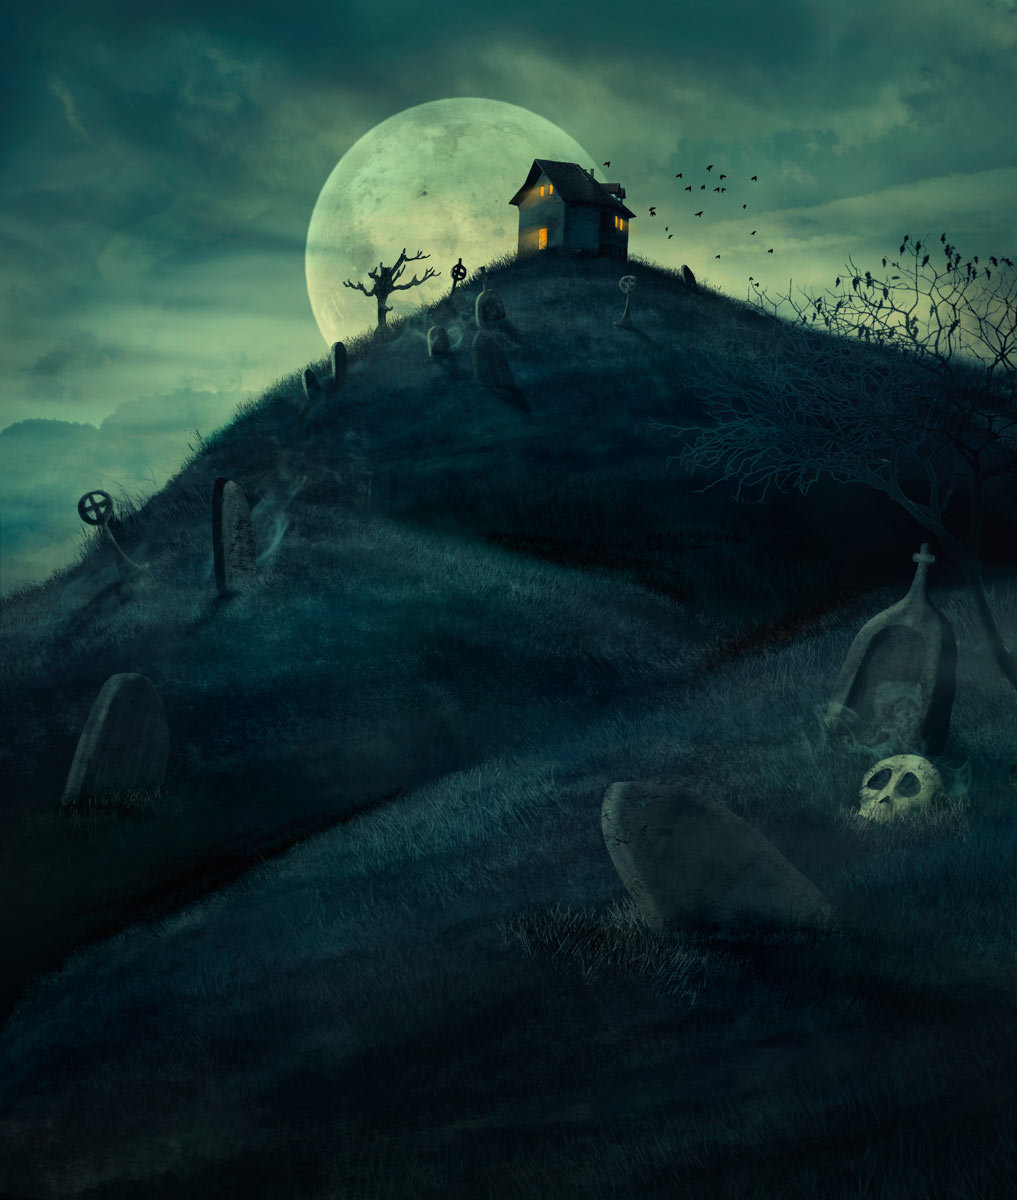 Haunted-House-On-The-Hill-Wall-Mural.jpg